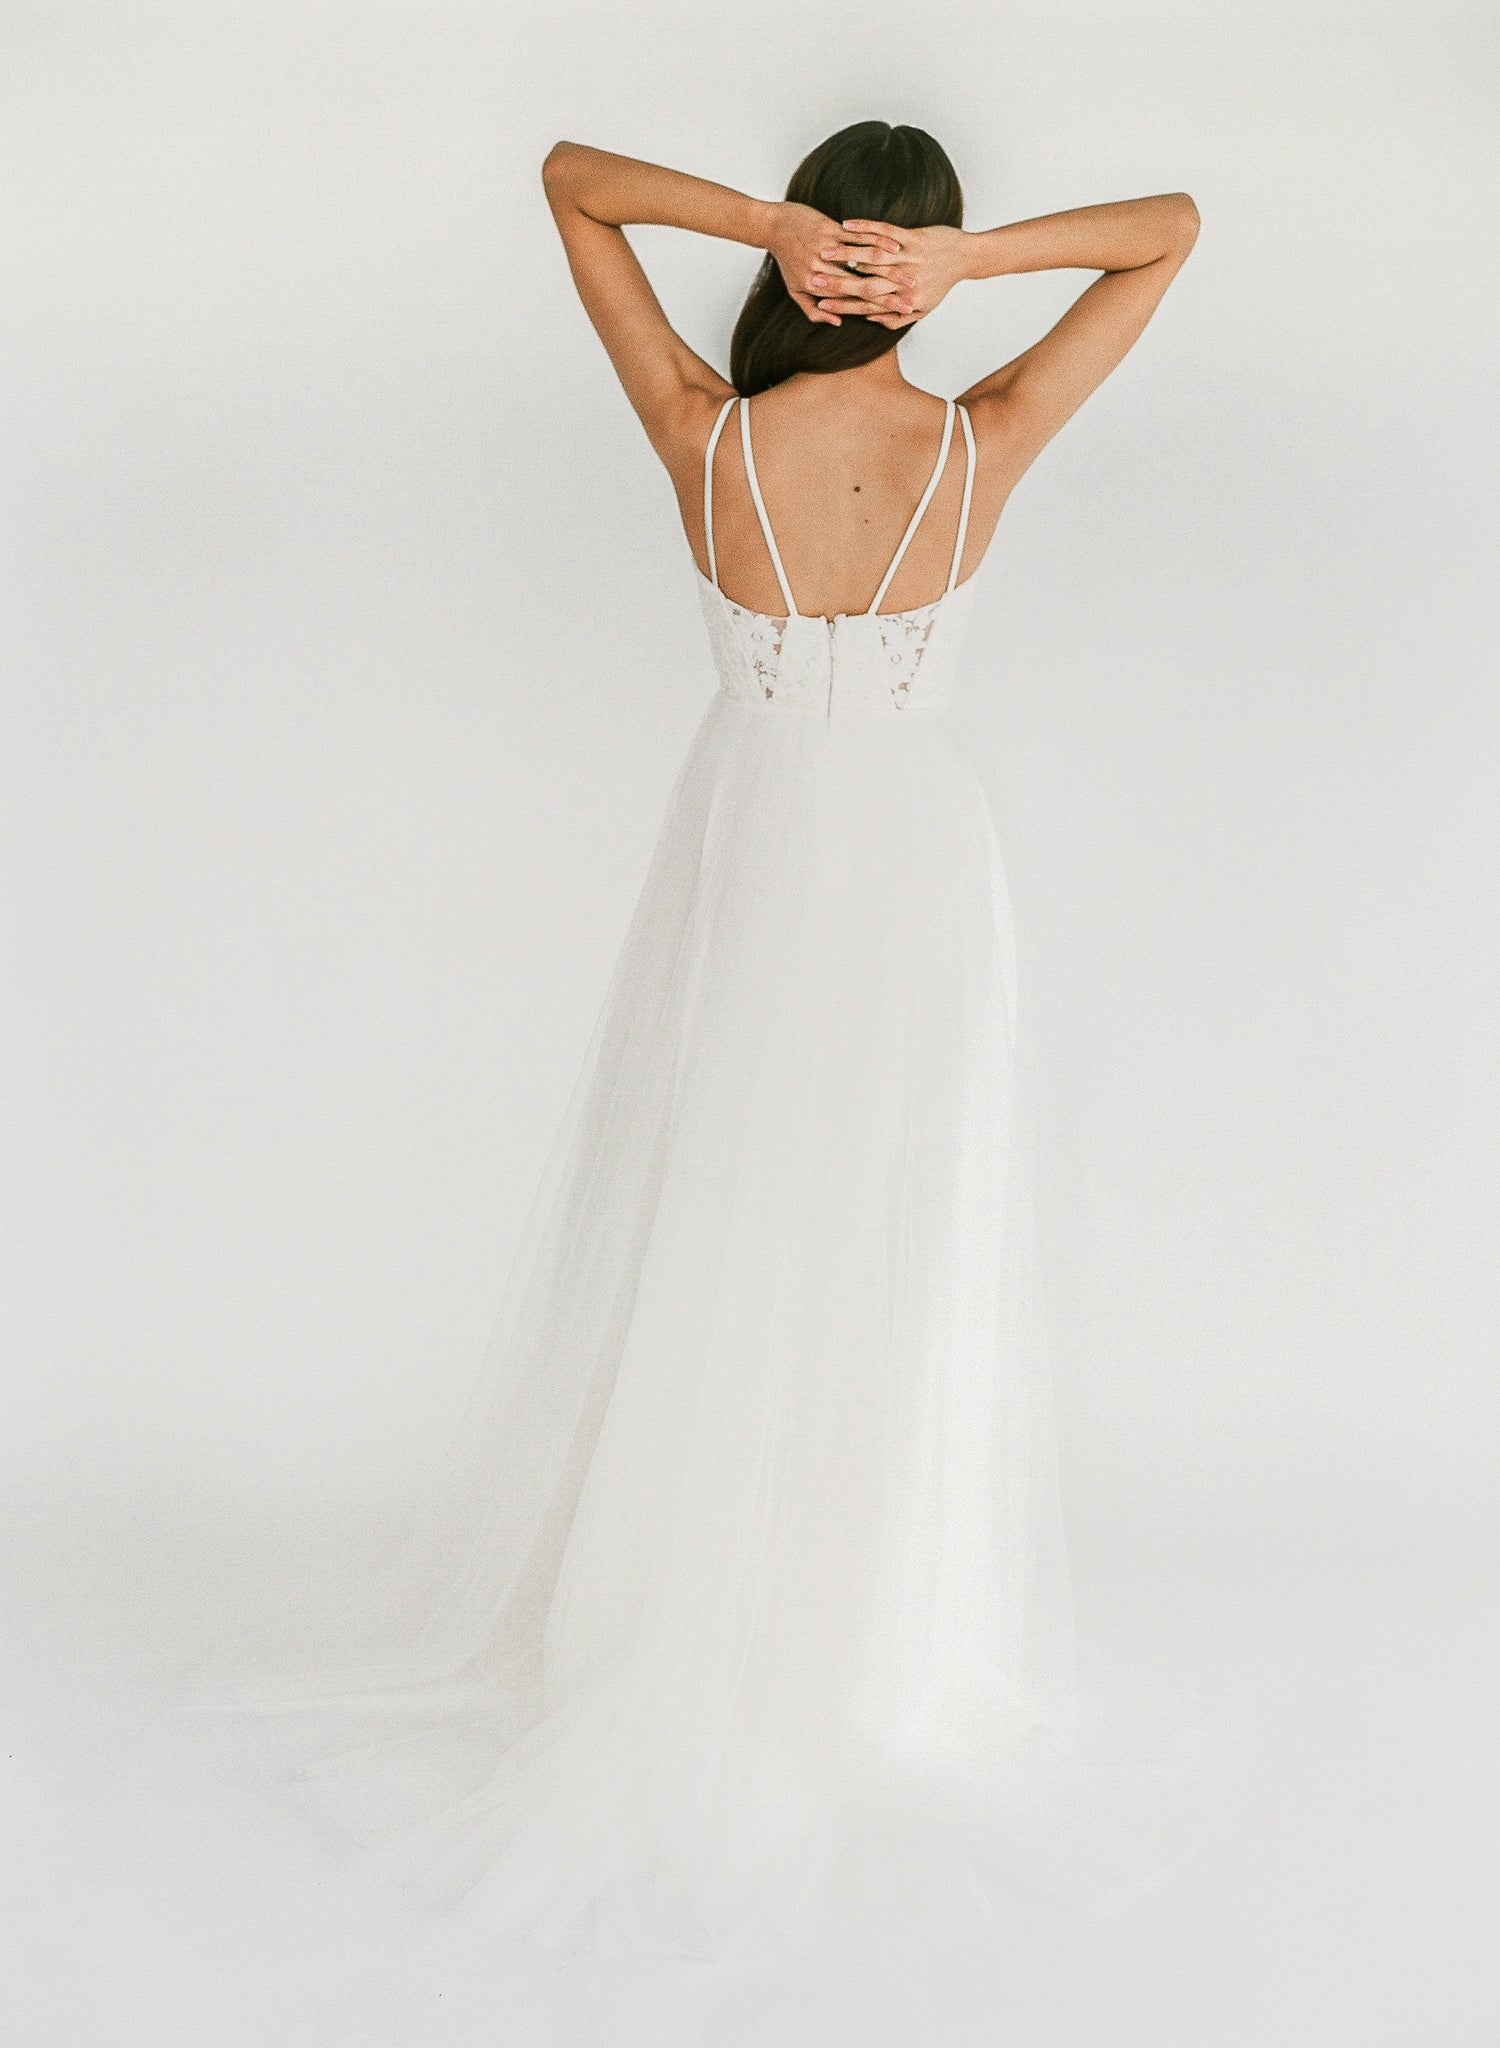 Ethical handmade wedding gown with beaded lace, sheer geometric cutouts, comfortable double straps, and a tulle skirt